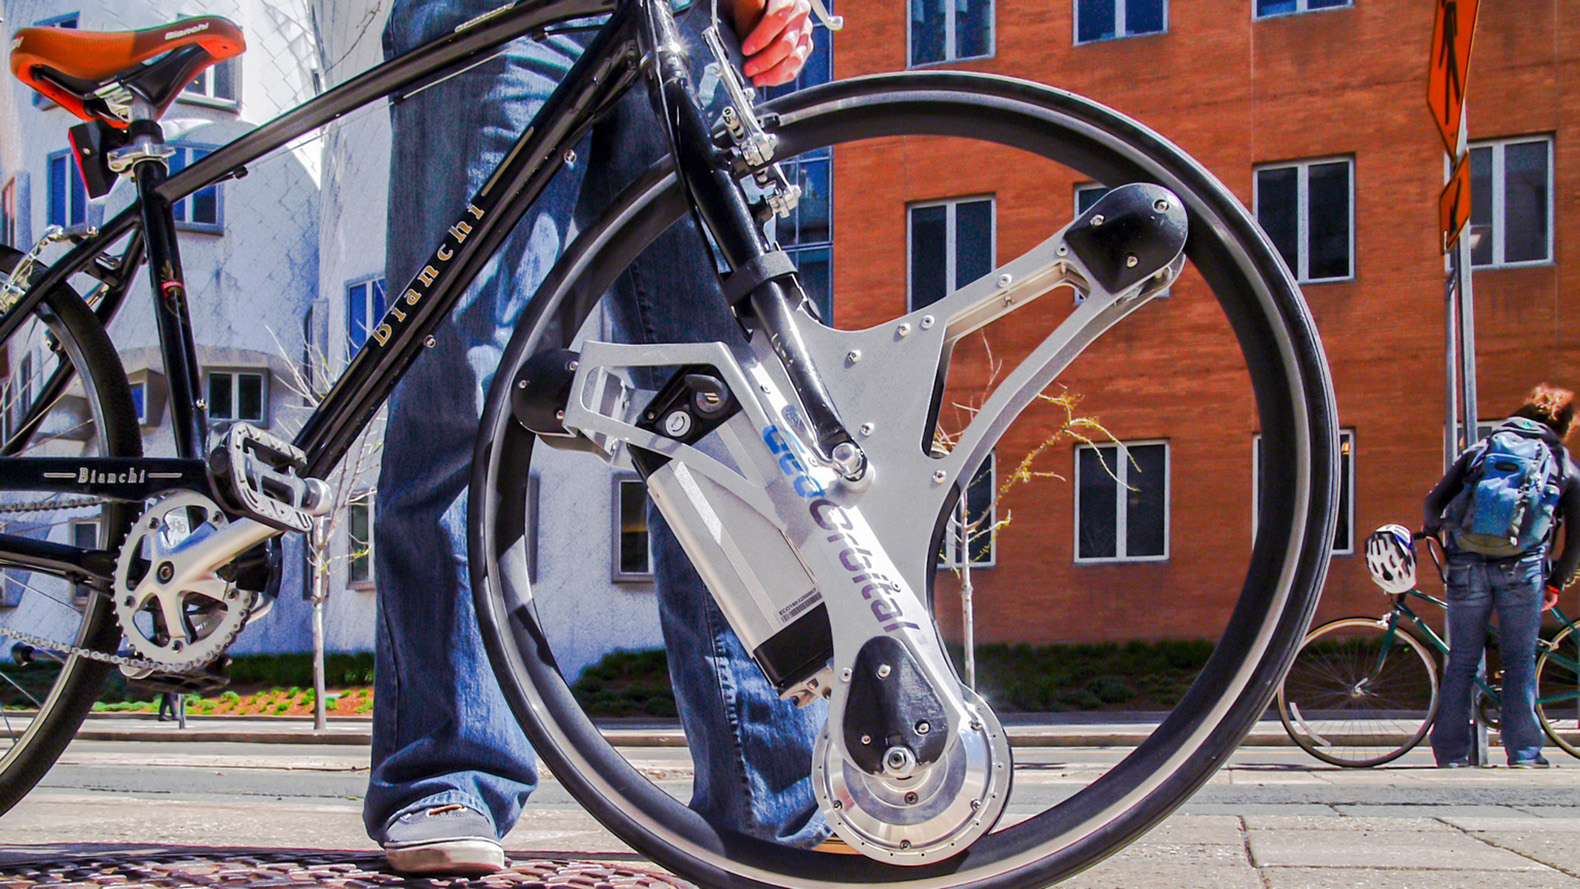 Electric design turns 22 - Swap In Wheel Converts Any Bike Into An Electric Within 60 Seconds